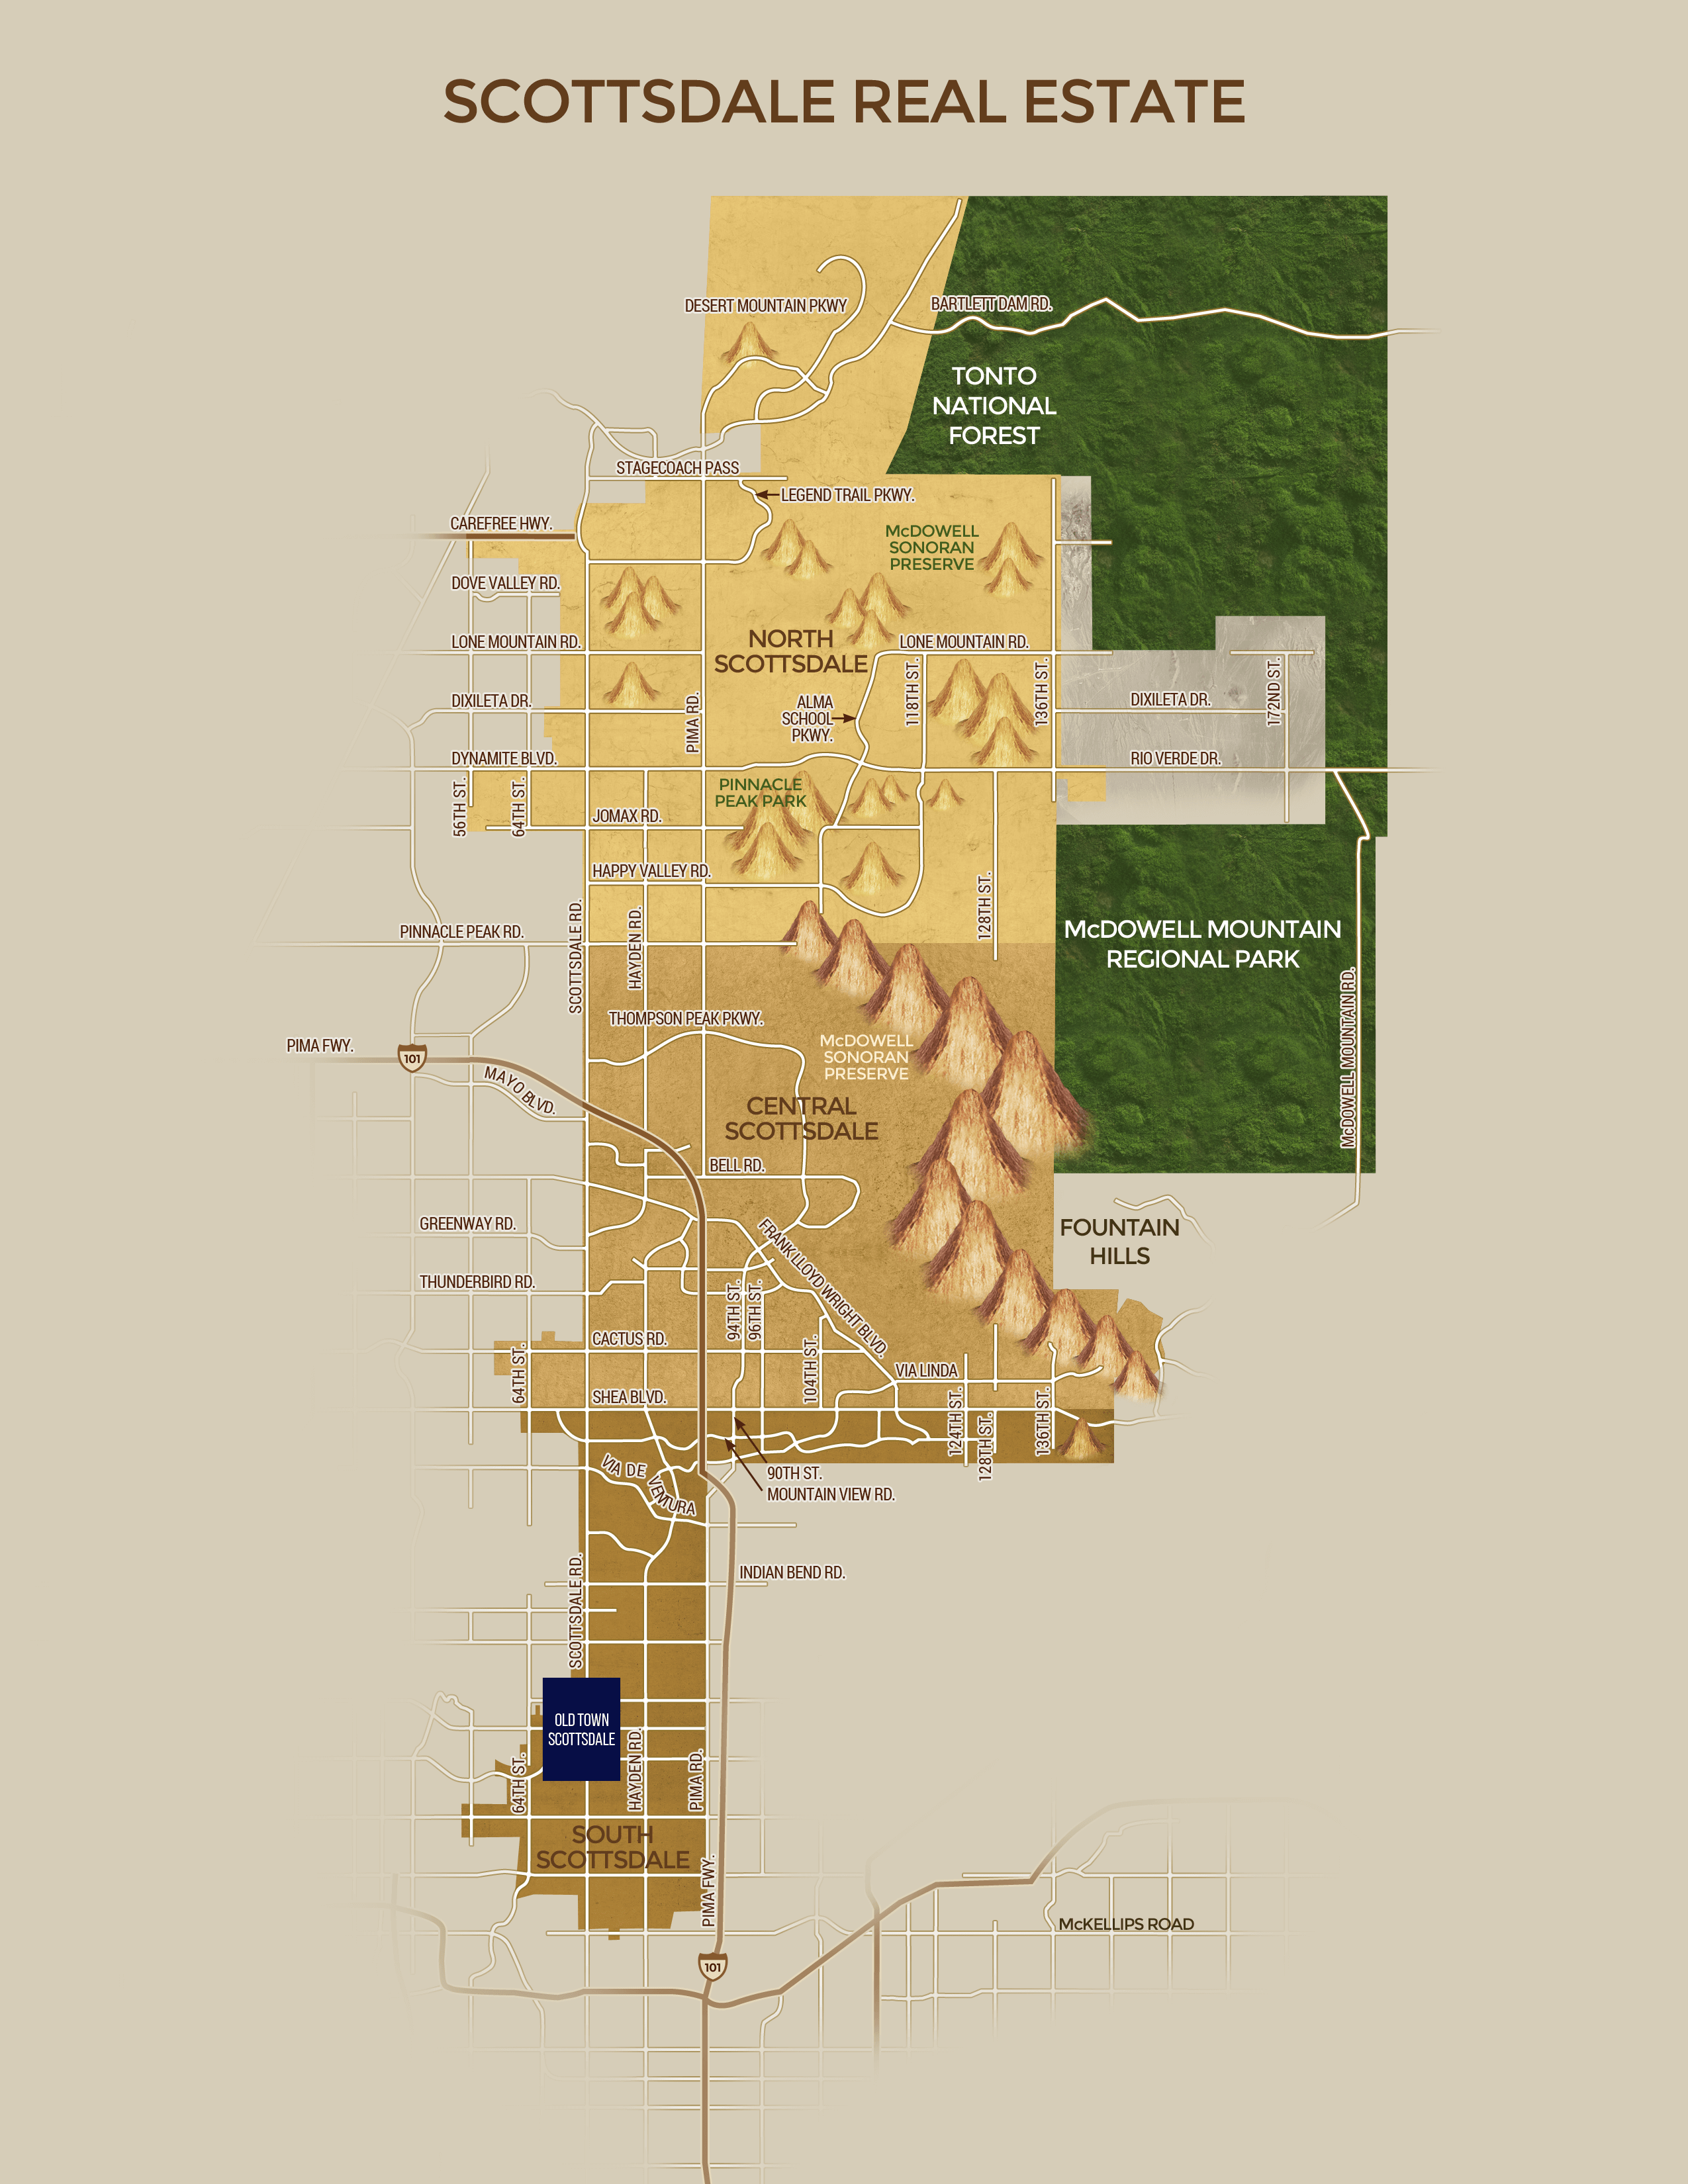 Scottsdale Real Estate Map